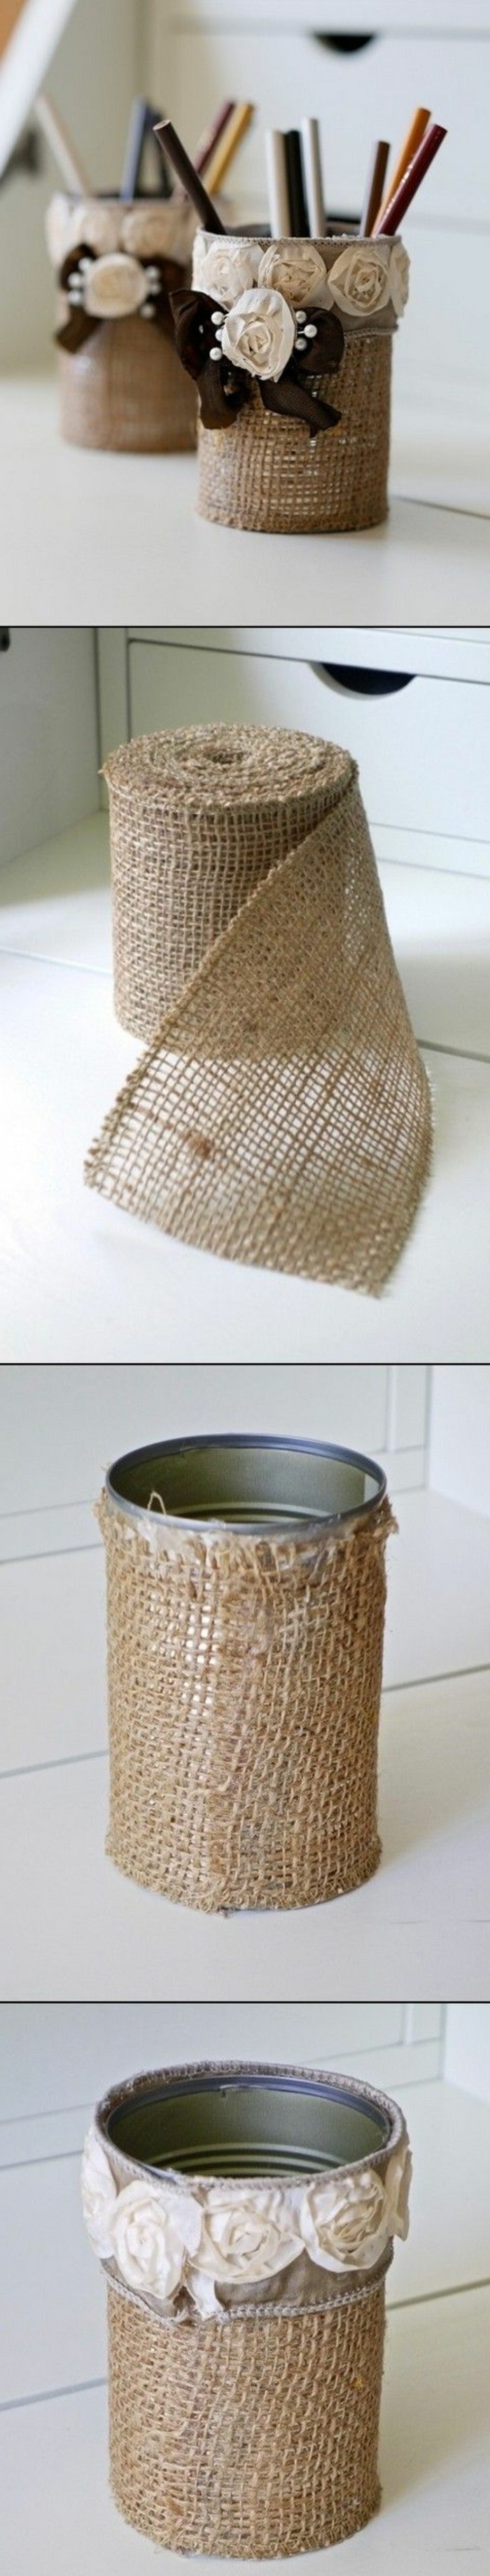 small faux white roses, brown bow, metal can, fun crafts for teens, diy tutorial, pencil holder